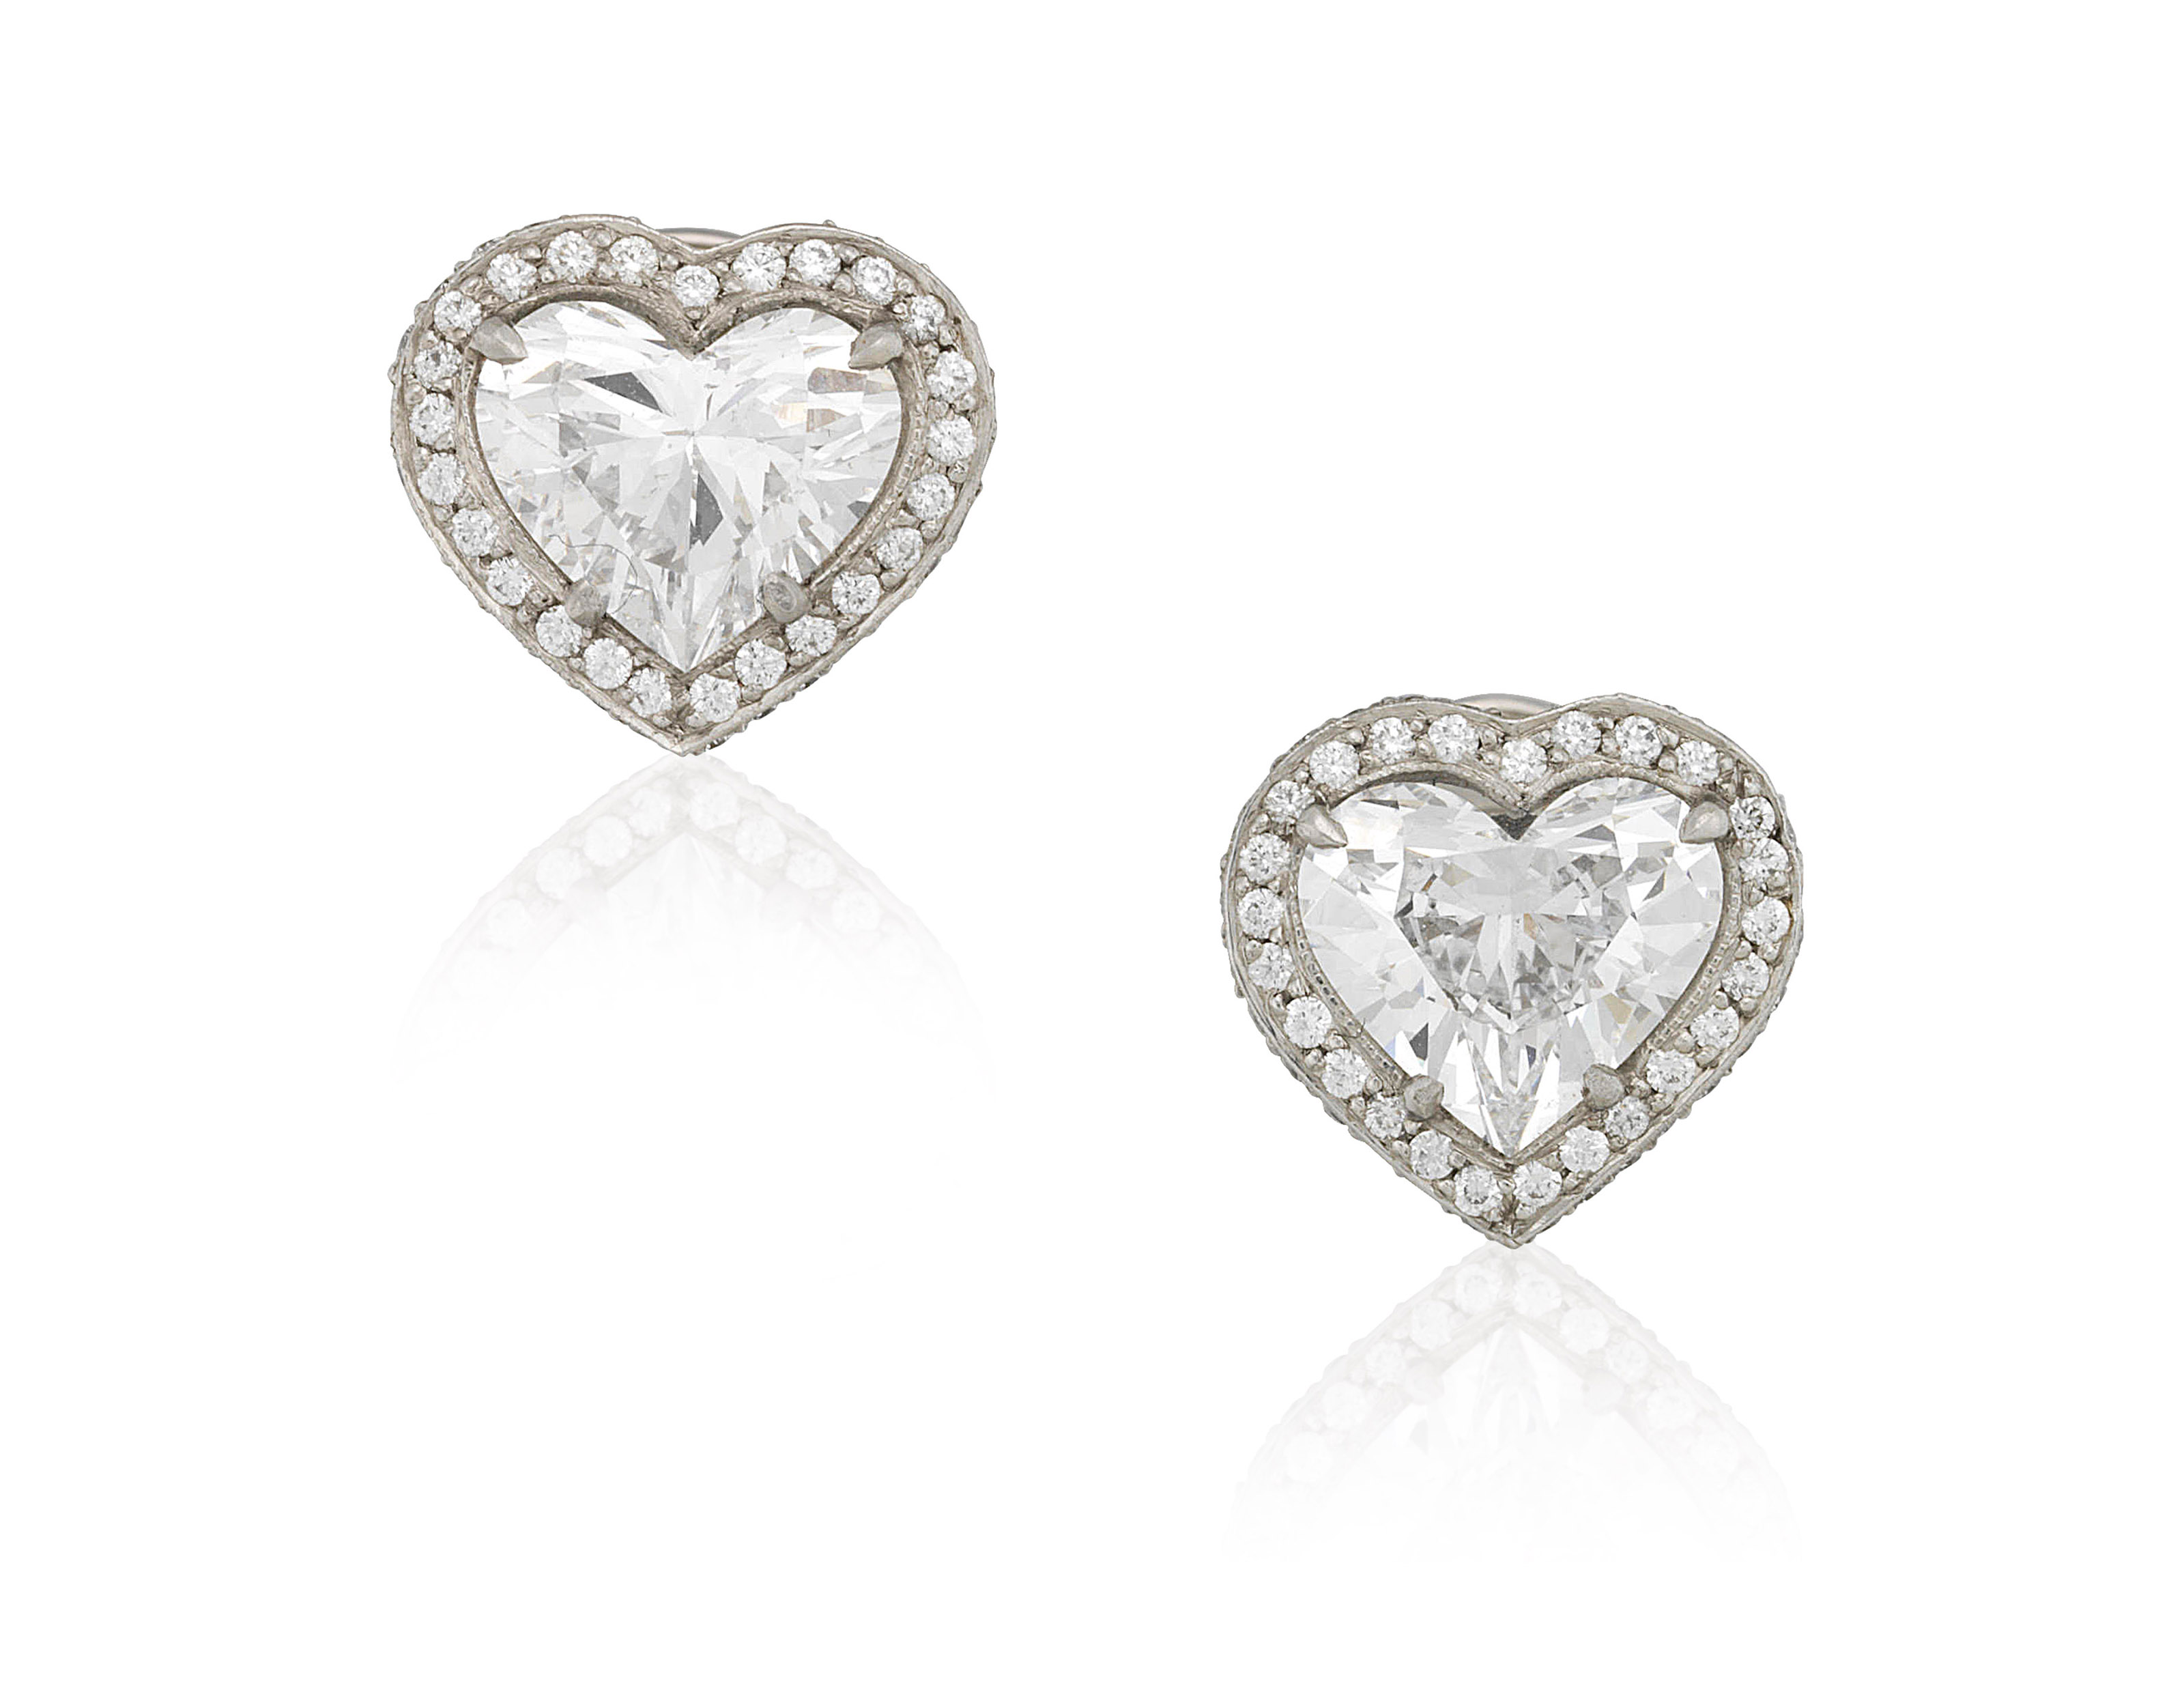 shaped sale zoom camuto jewelry stud vince earrings diamond